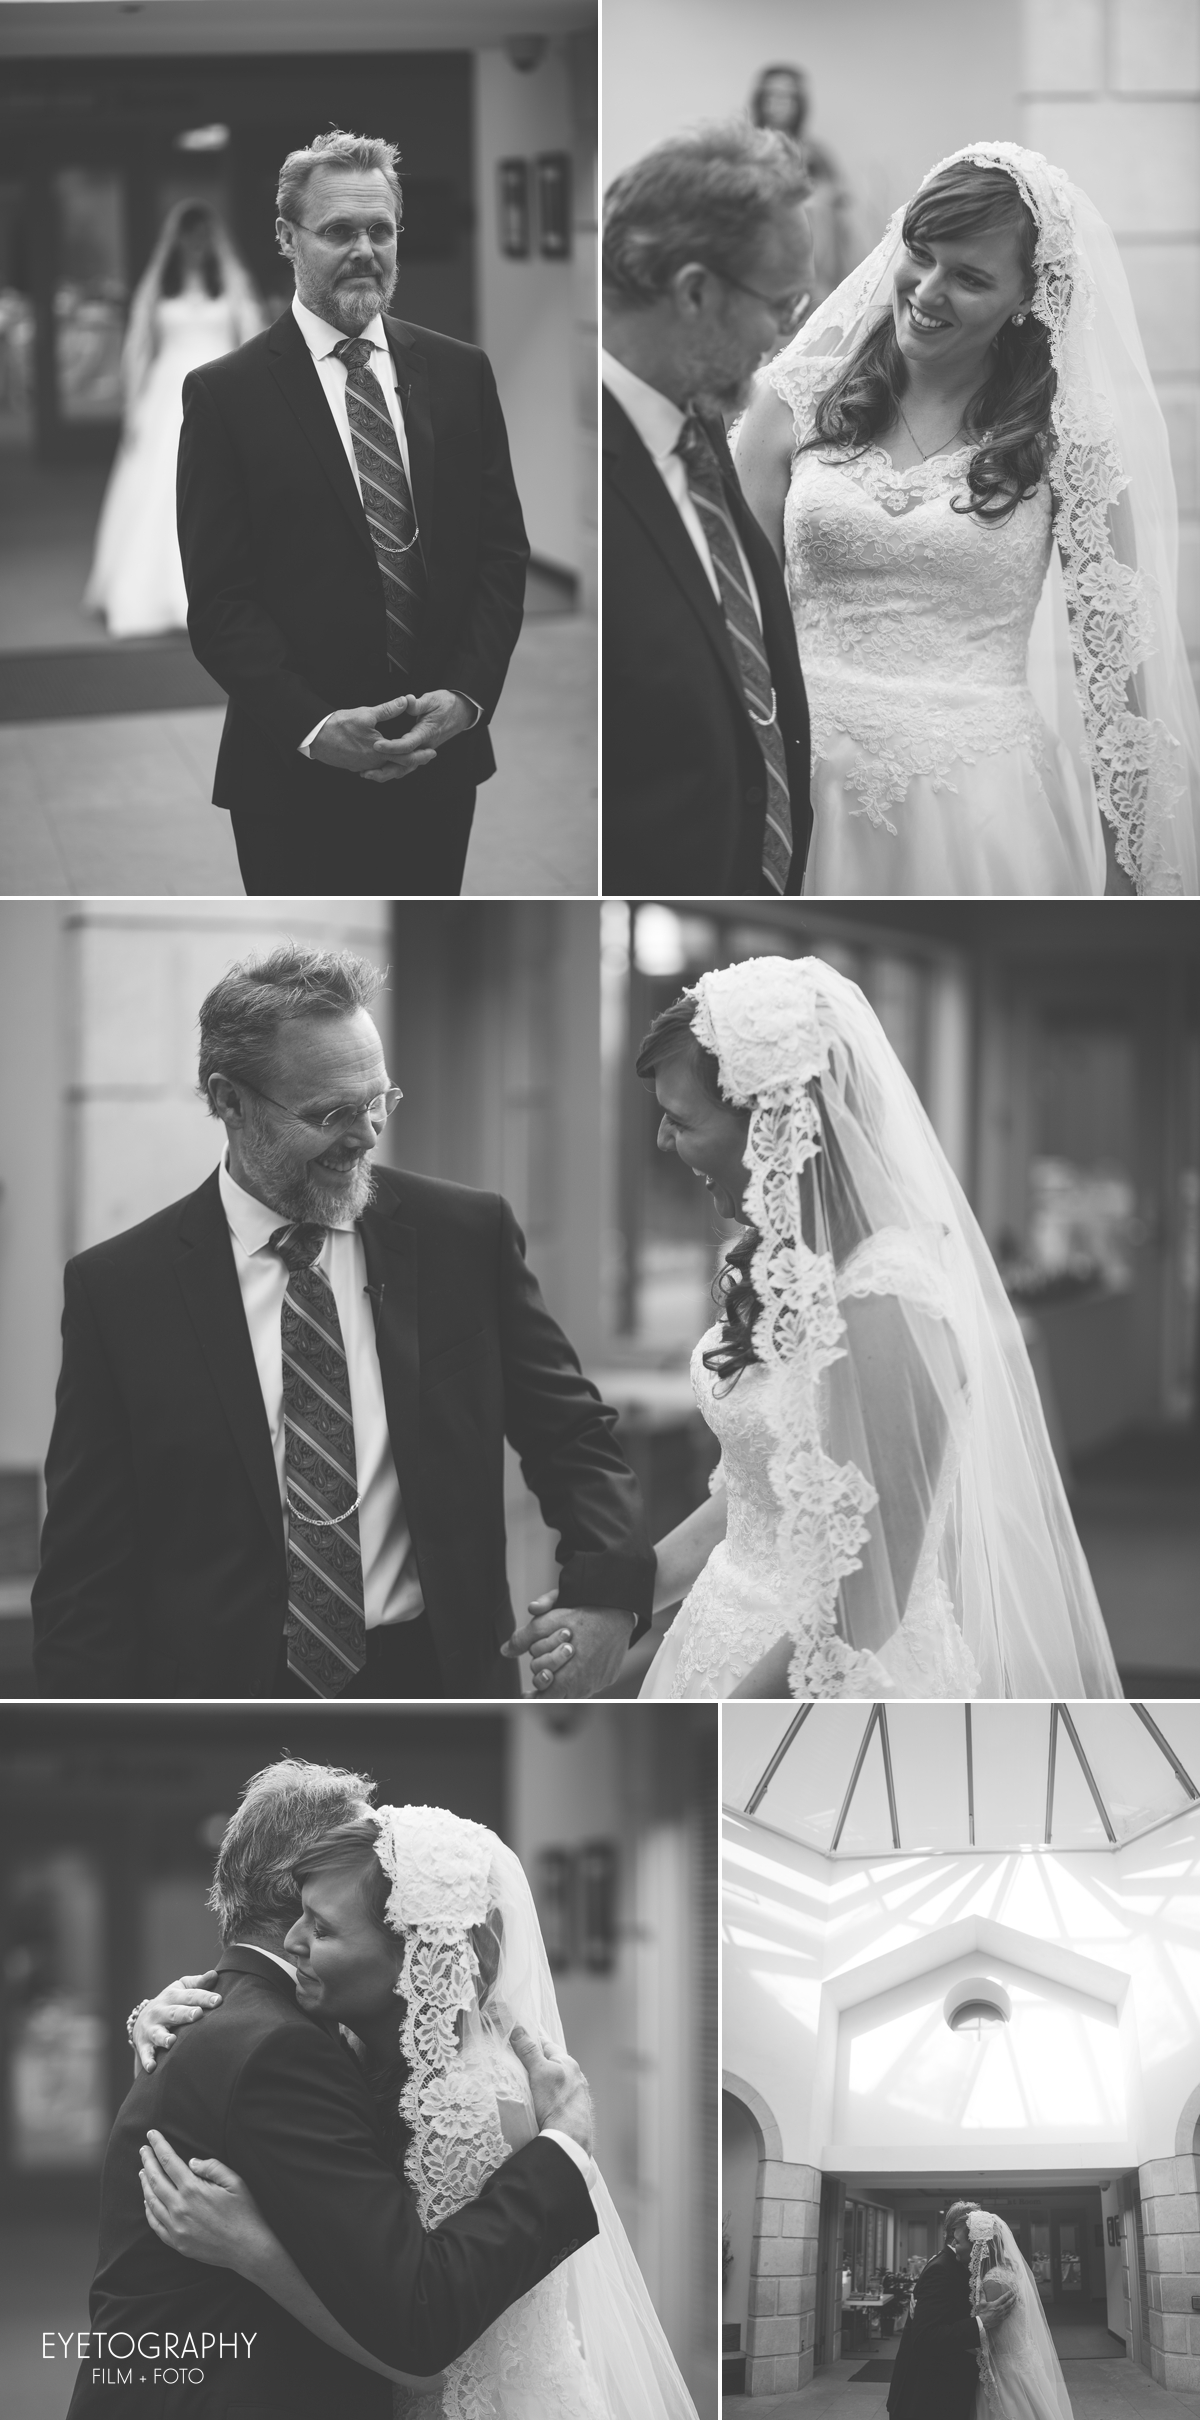 St. Paul Wedding Photography | Luke + Jean | Eyetography Film + Foto 3